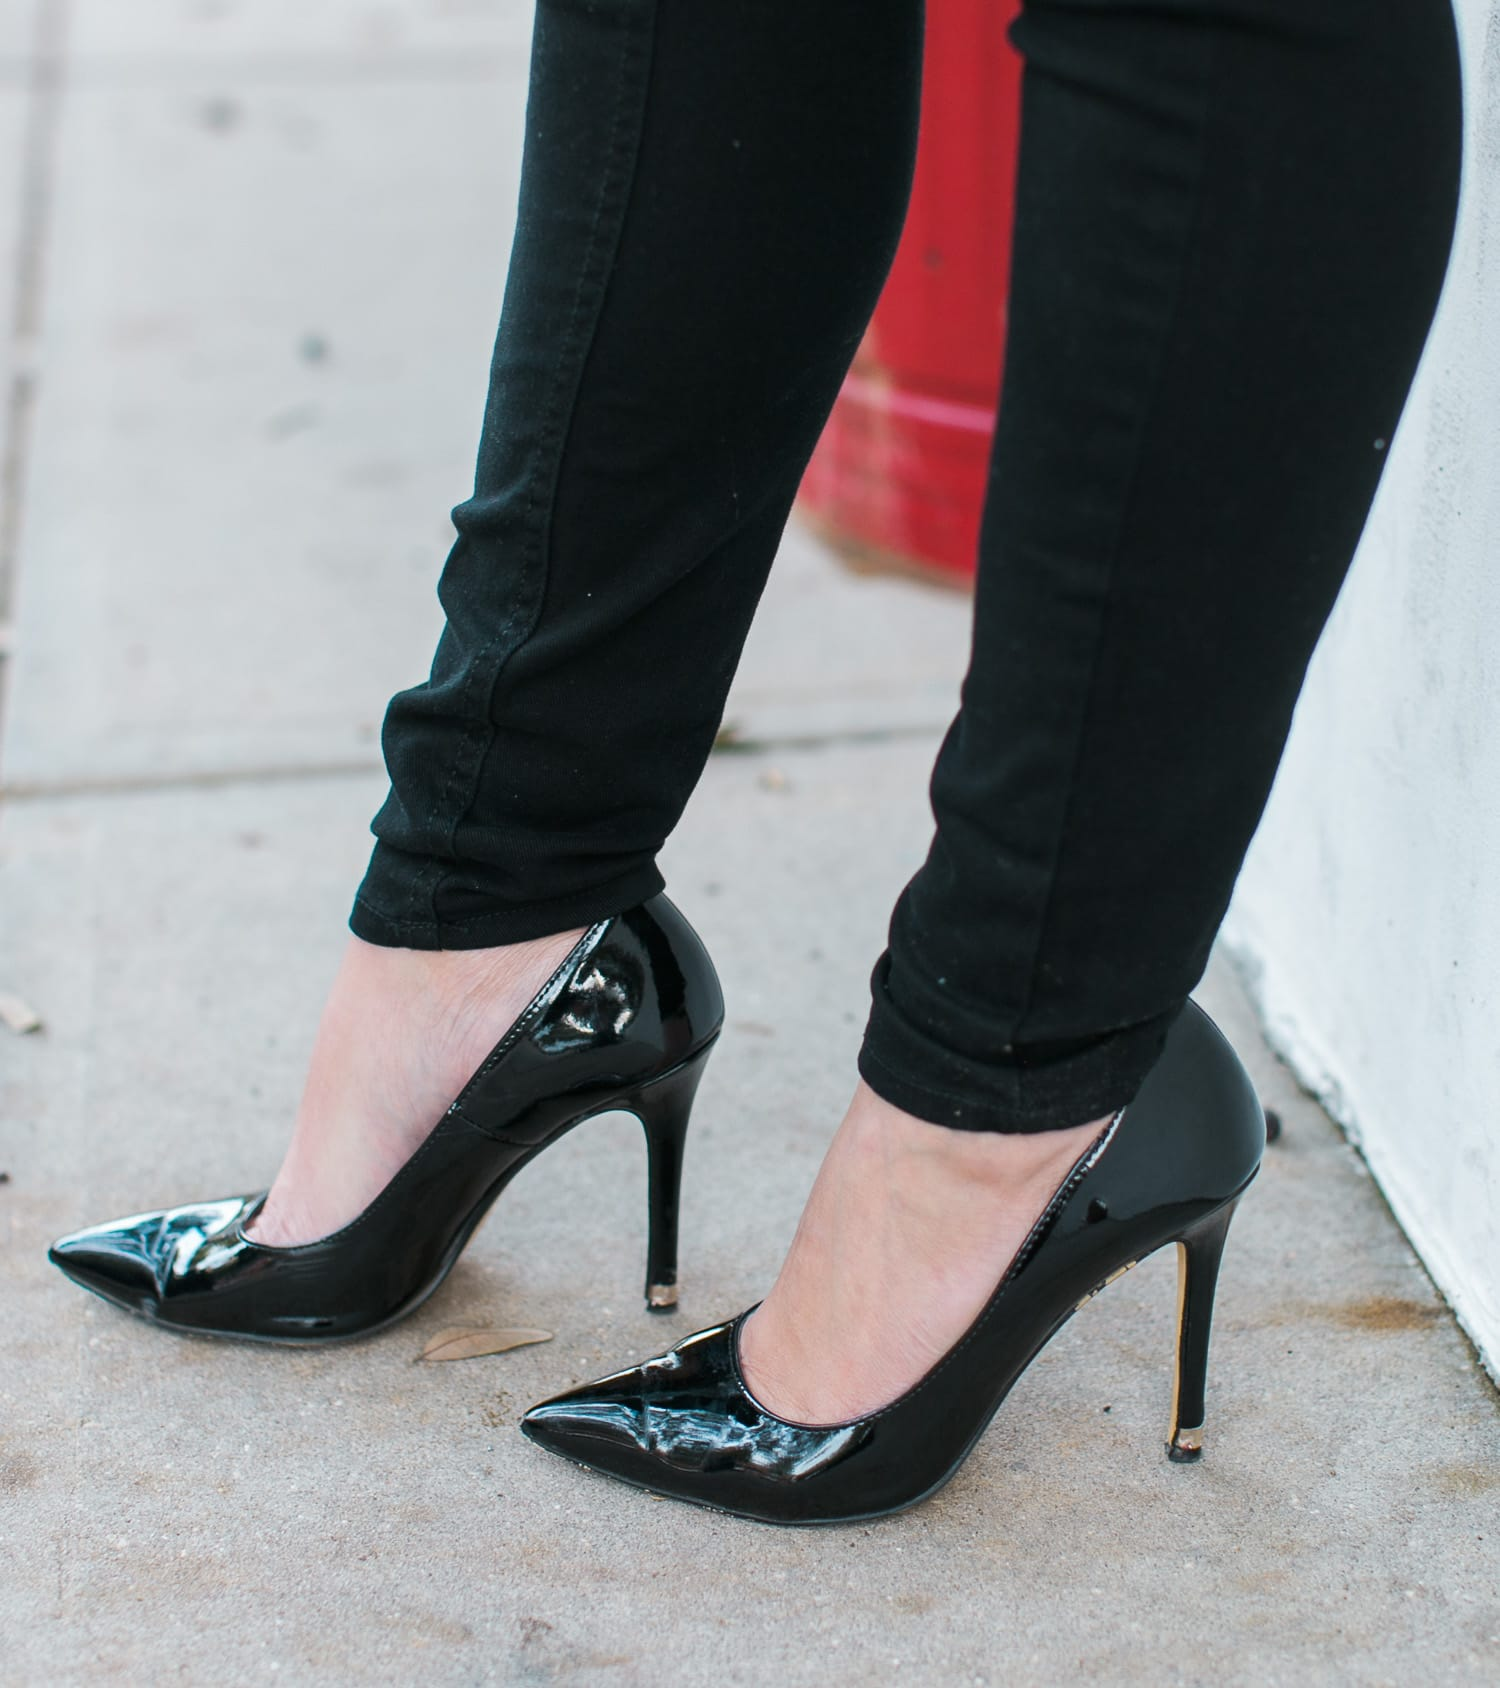 black-pointy-toe-patent-leather-pumps-051